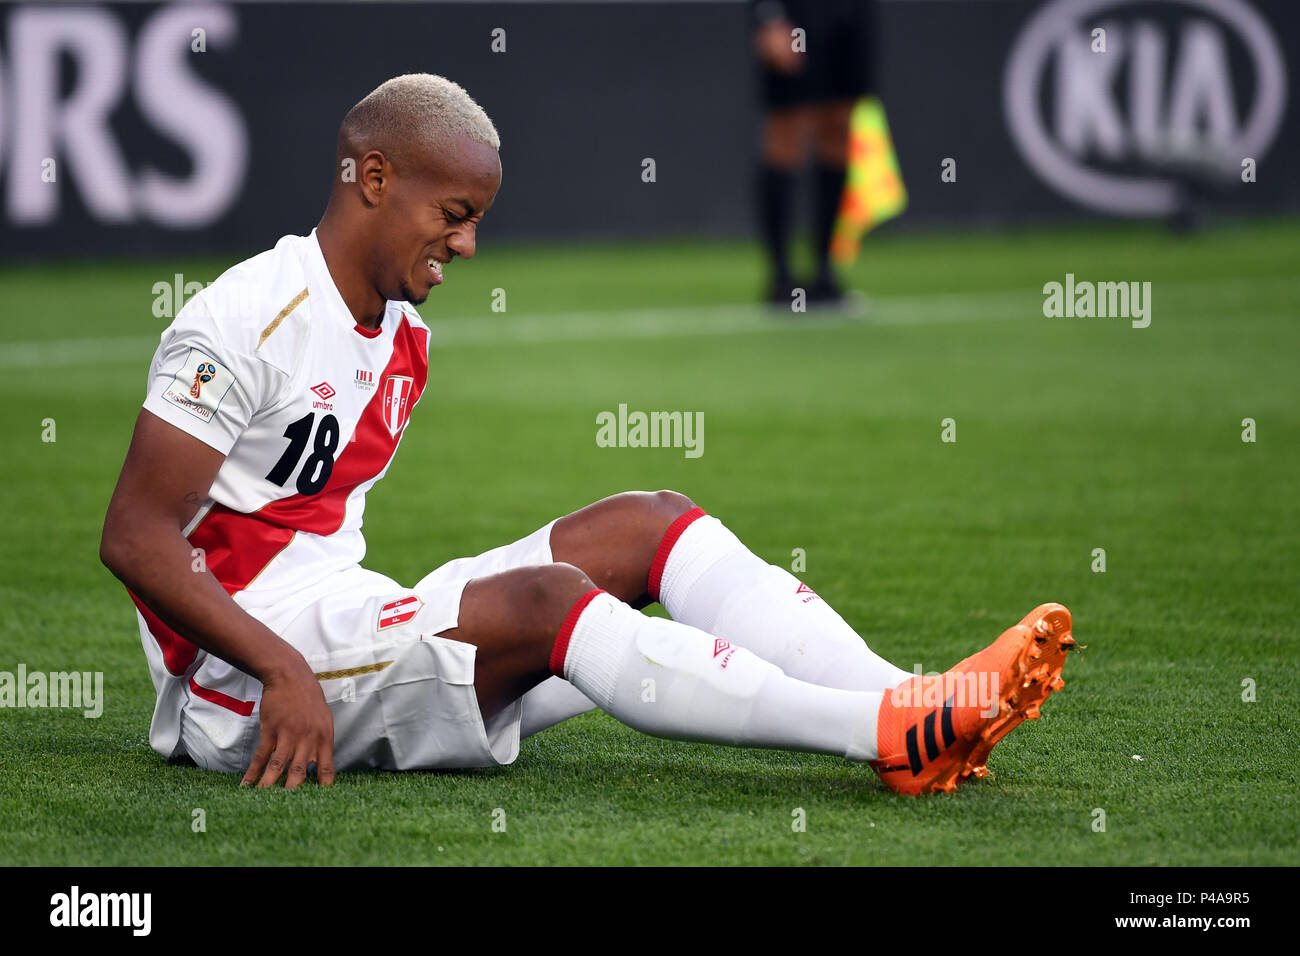 Yekaterinburg, Russia. 21st June, 2018. Soccer World Cup 2018: France vs. Peru : Preliminary round, group C: Second game day at the Yekaterinburg arena. Nabil Fekir aus Frankreich führt den Ball. Credit: Marius Becker/dpa/Alamy Live News Credit: dpa picture alliance/Alamy Live News Credit: dpa picture alliance/Alamy Live News Stock Photo